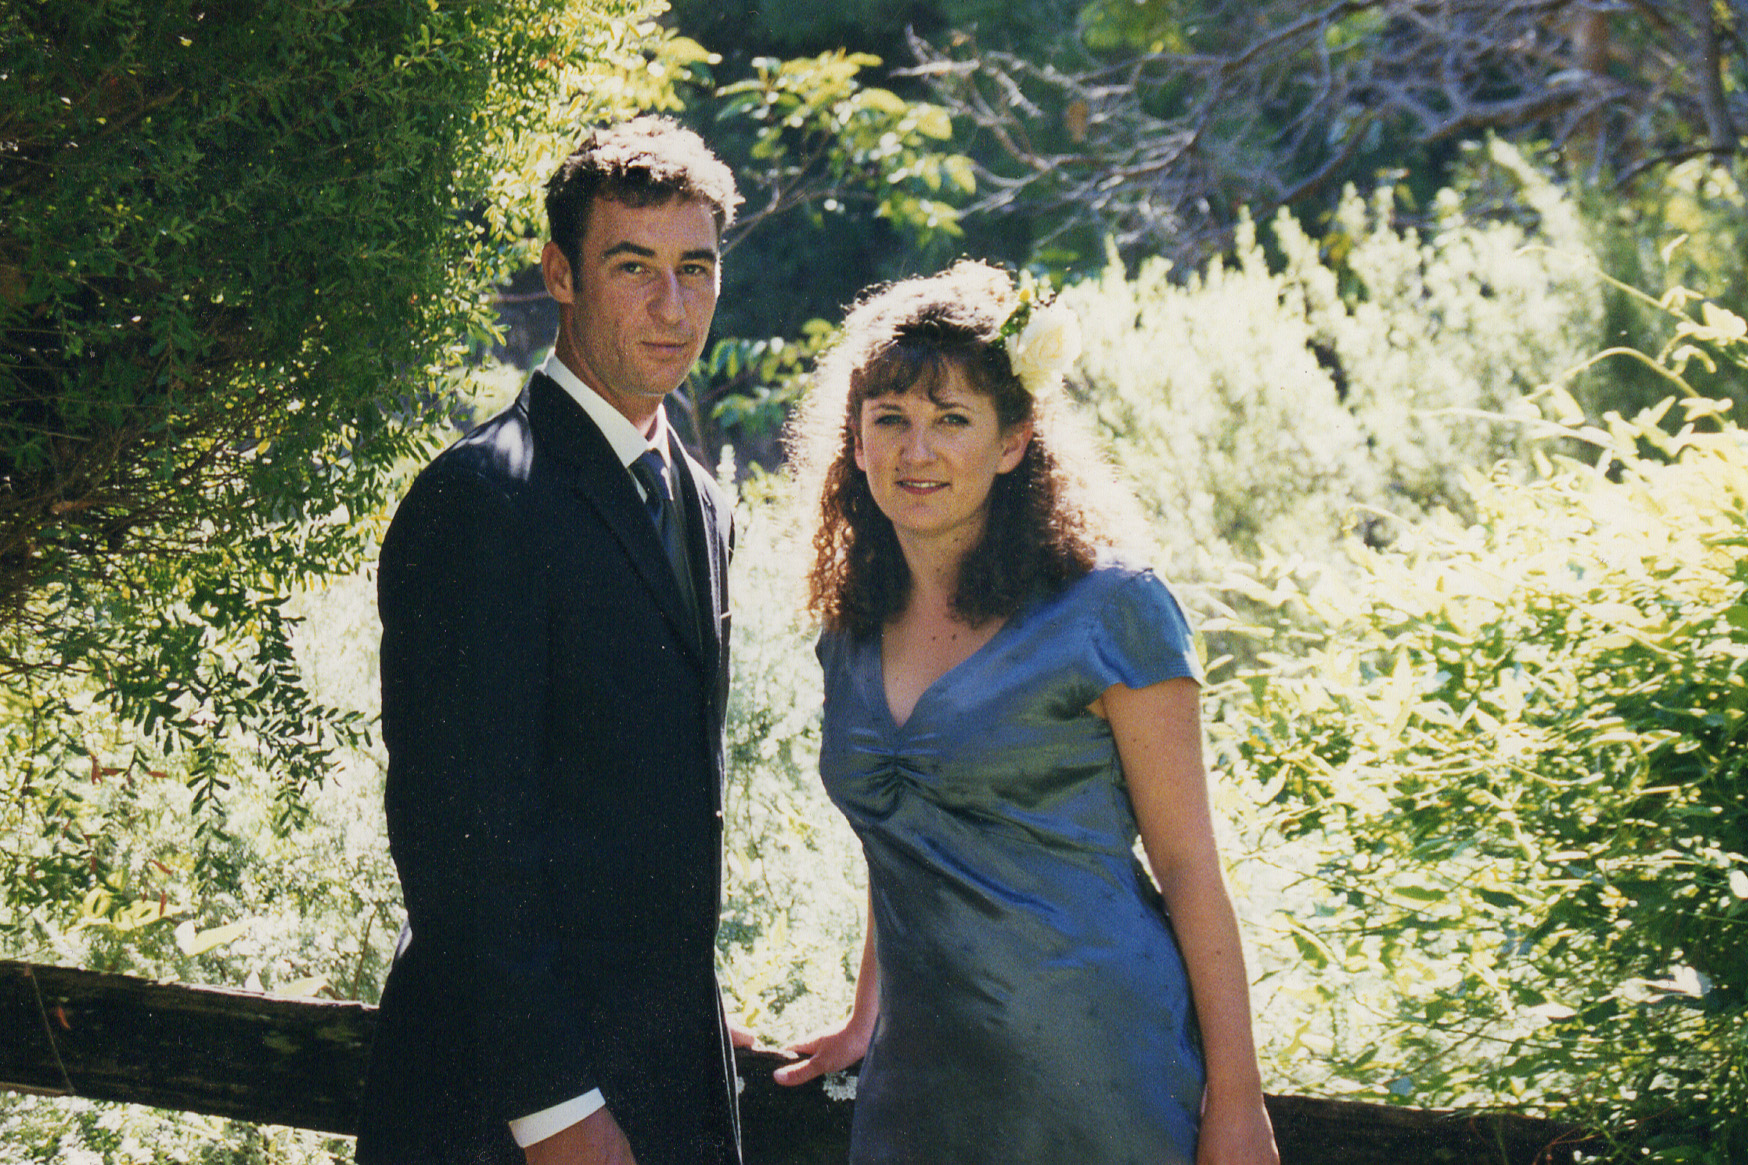 Our Wedding 2001